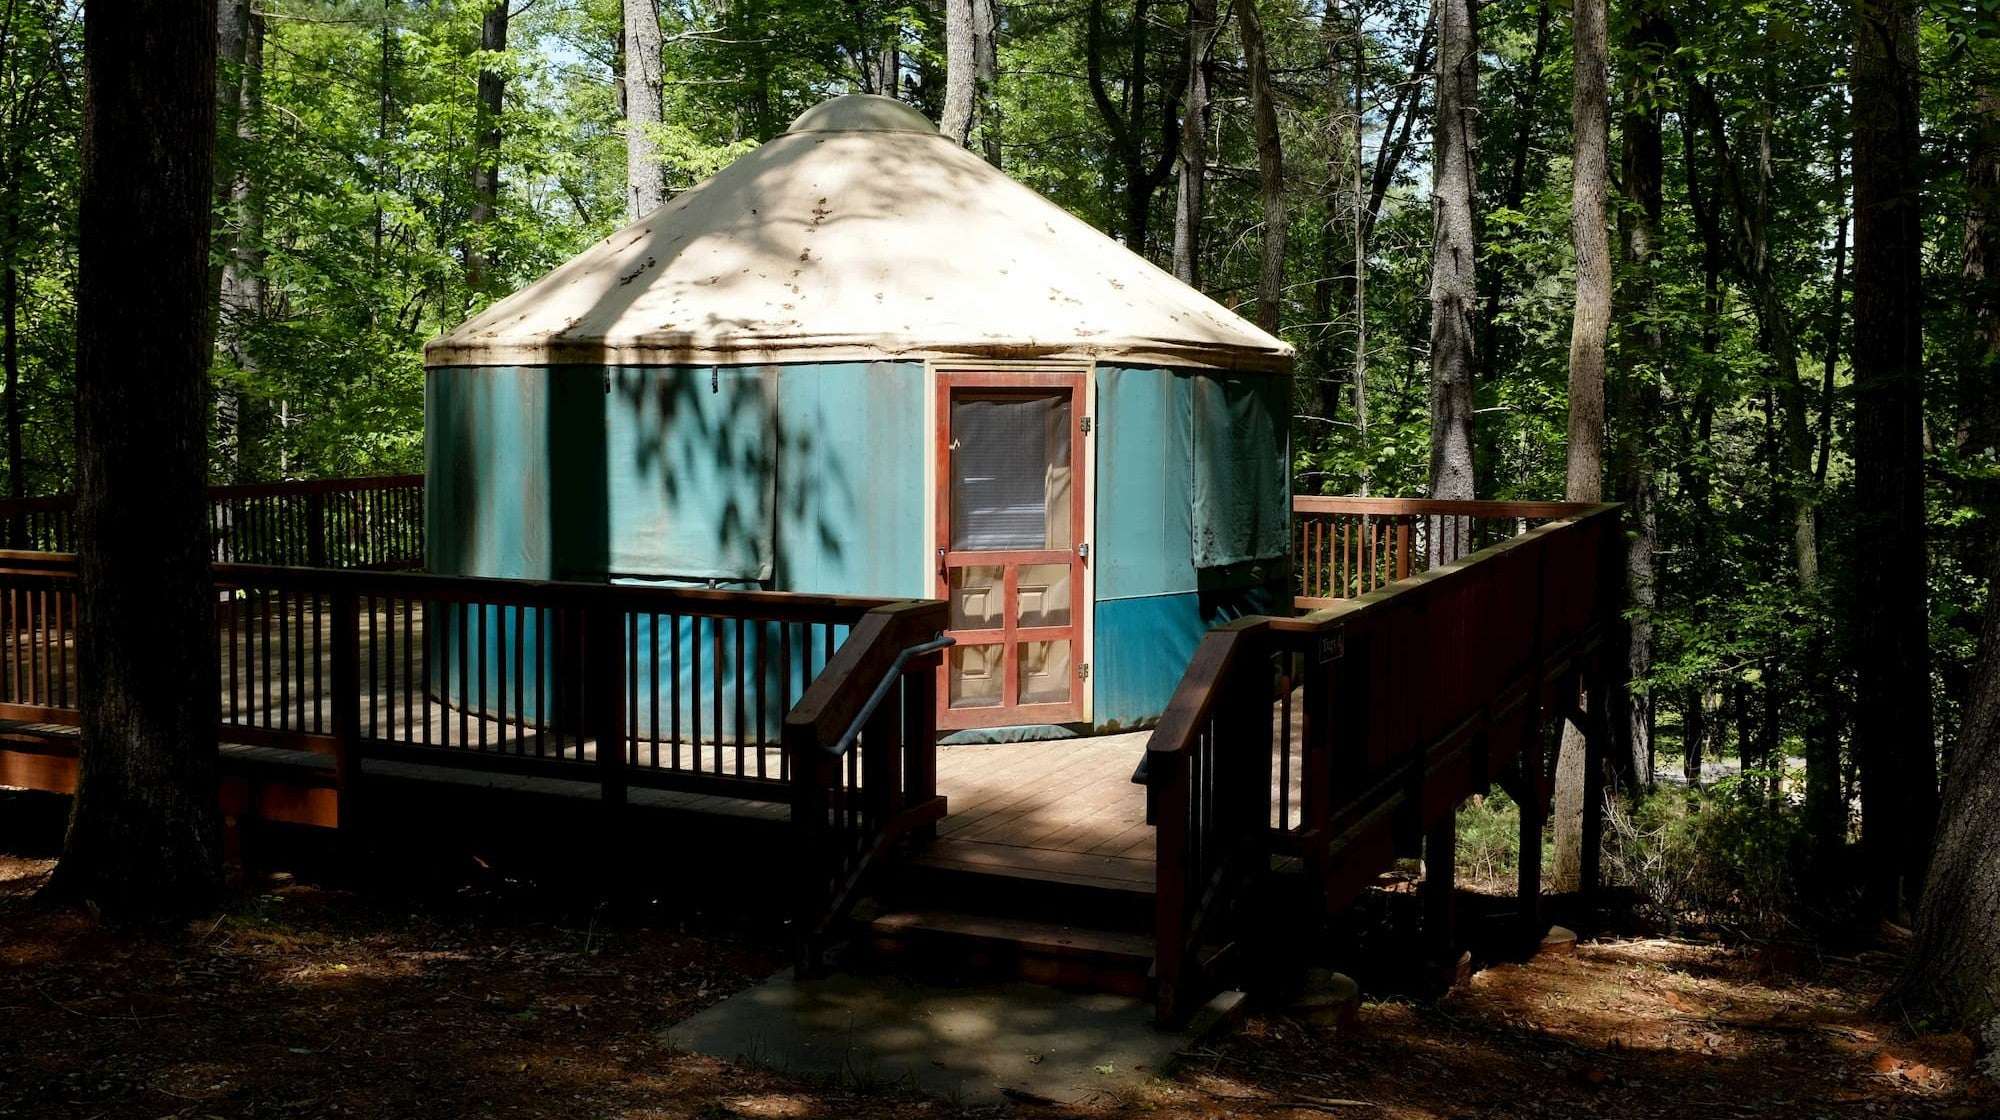 Oregon Yurts Well Worth A Drive To The Coast Or Mountains What is yurt camping, you ask? oregon yurts well worth a drive to the